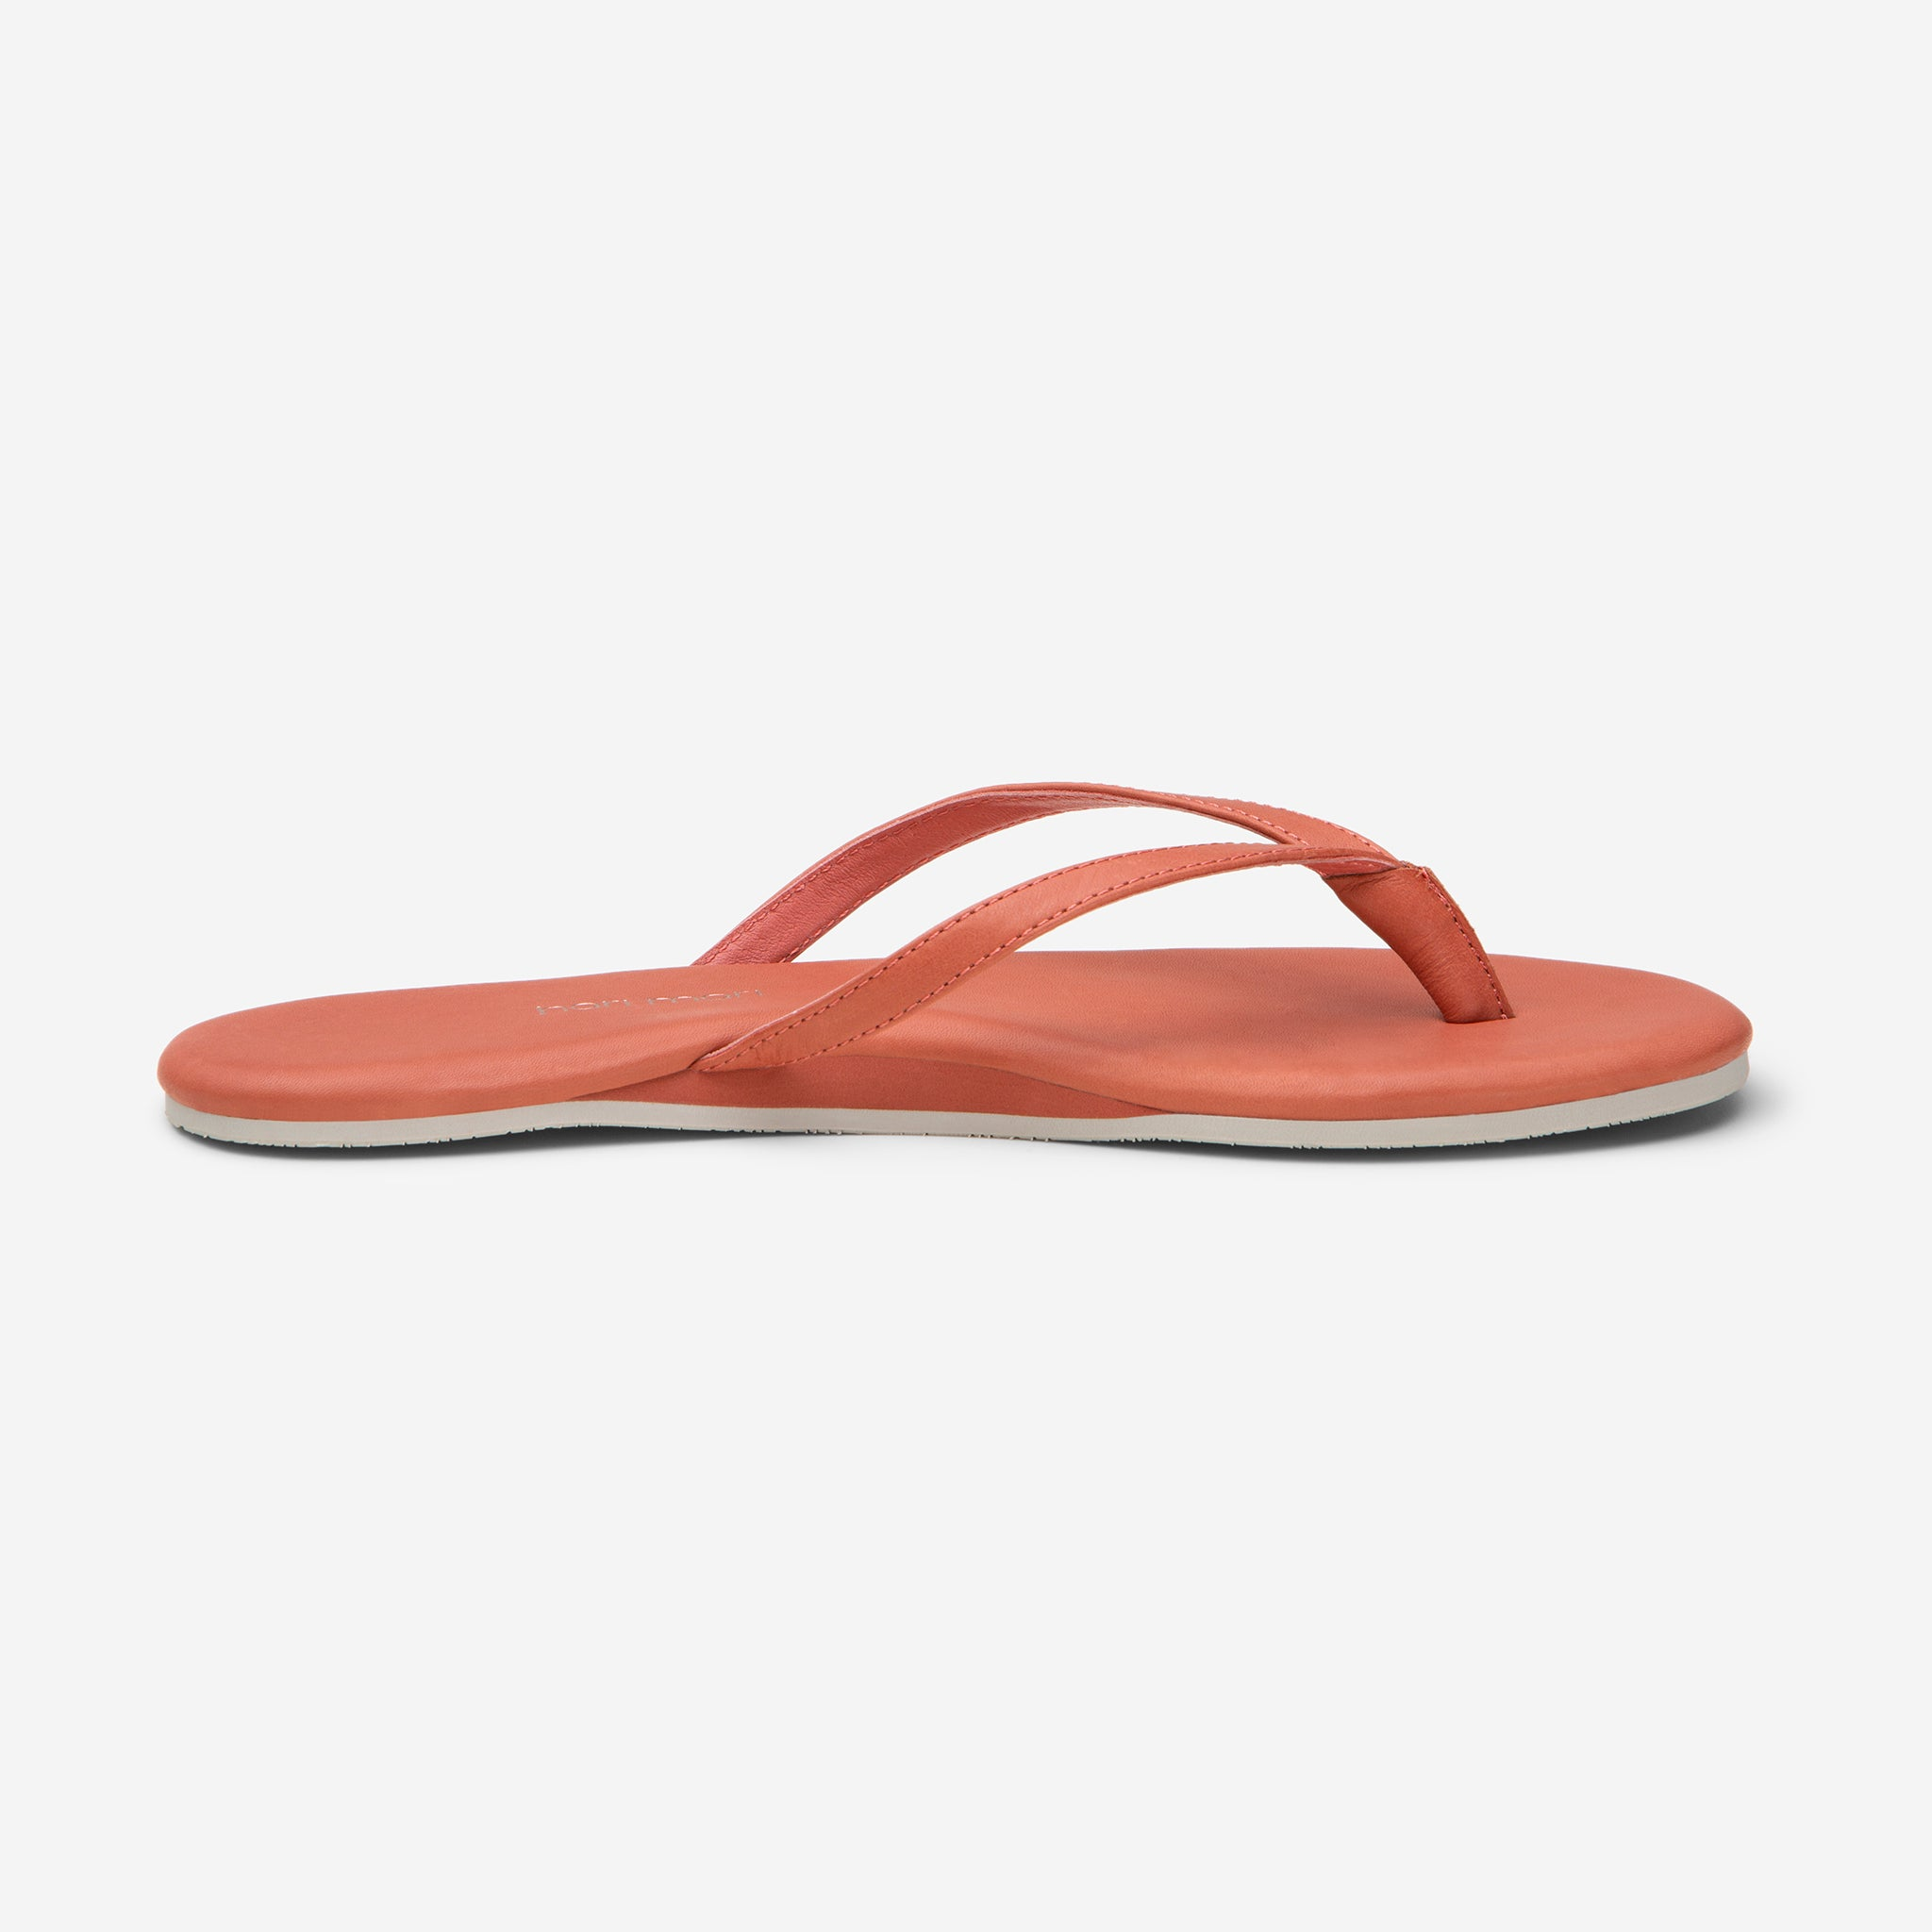 side profile of Hari Mari Women's The Mari Flip Flop in Bruschetta on white background